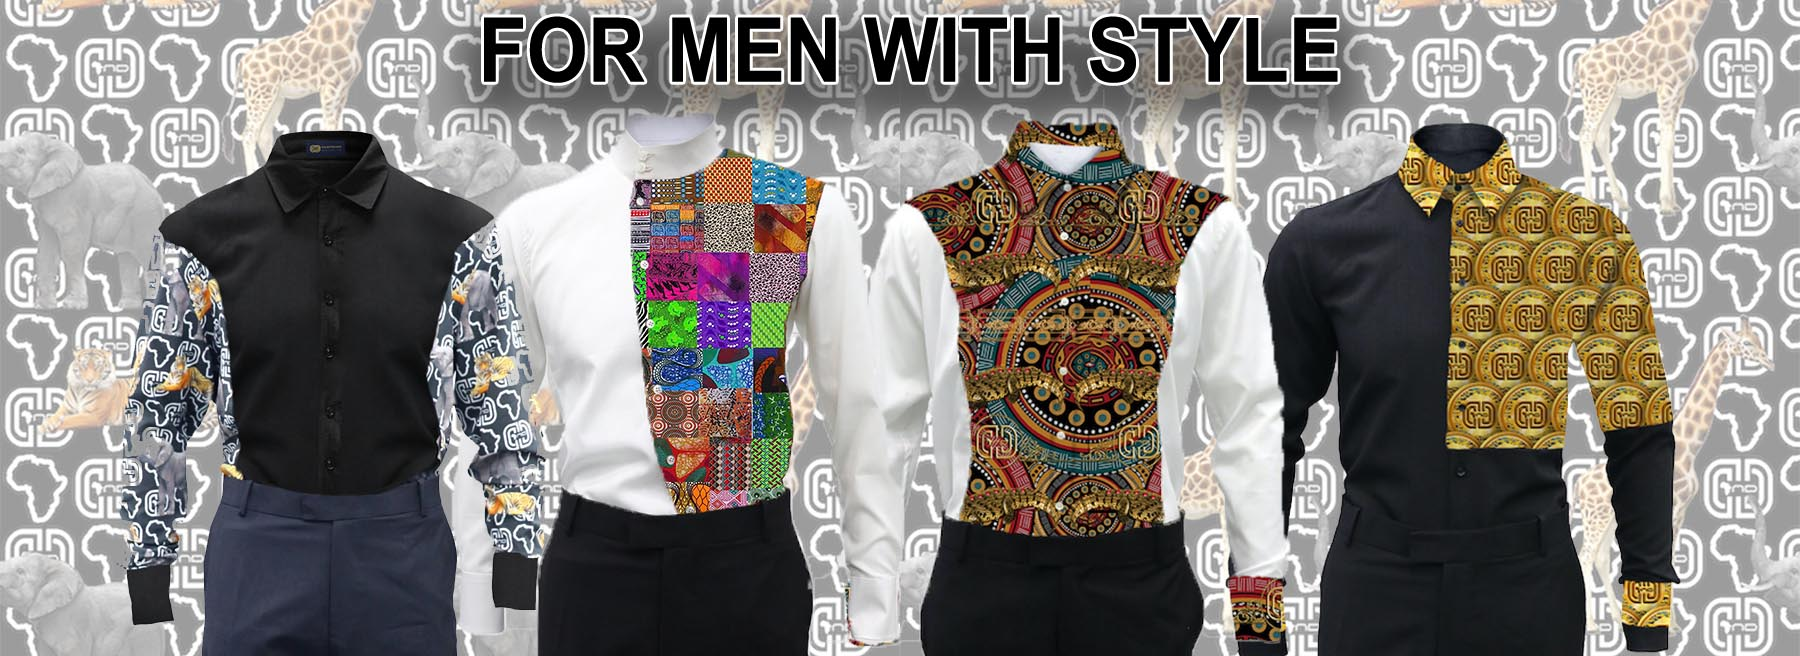 Formal shirts in Addis Ababa